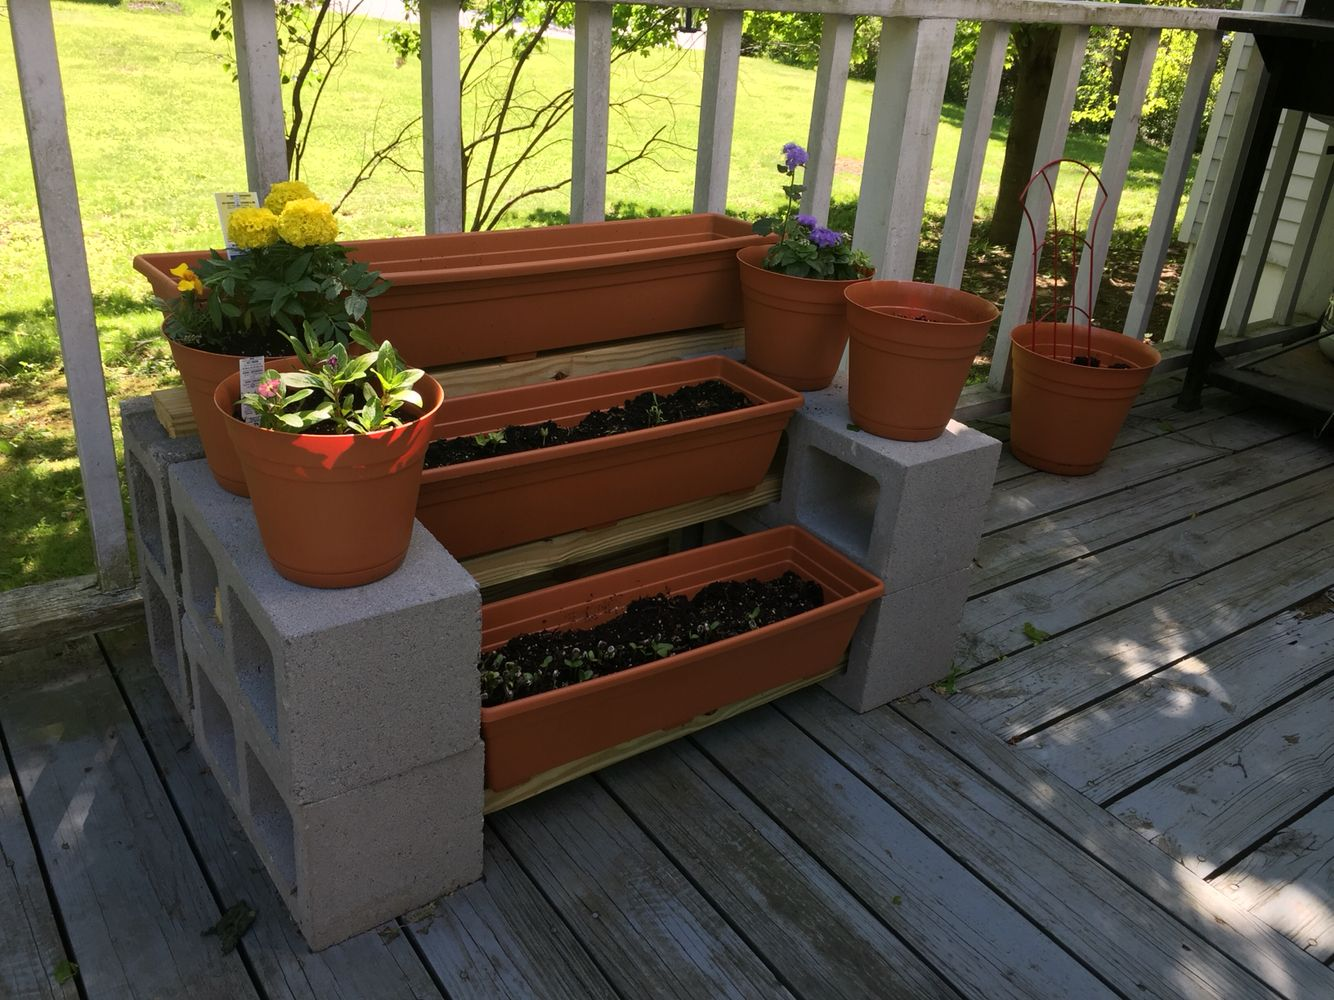 Plant Stand Made With Cinder Blocks And 2x4s Can Be Any Length Diy Plant Stand Cinder Block Garden Diy Plants